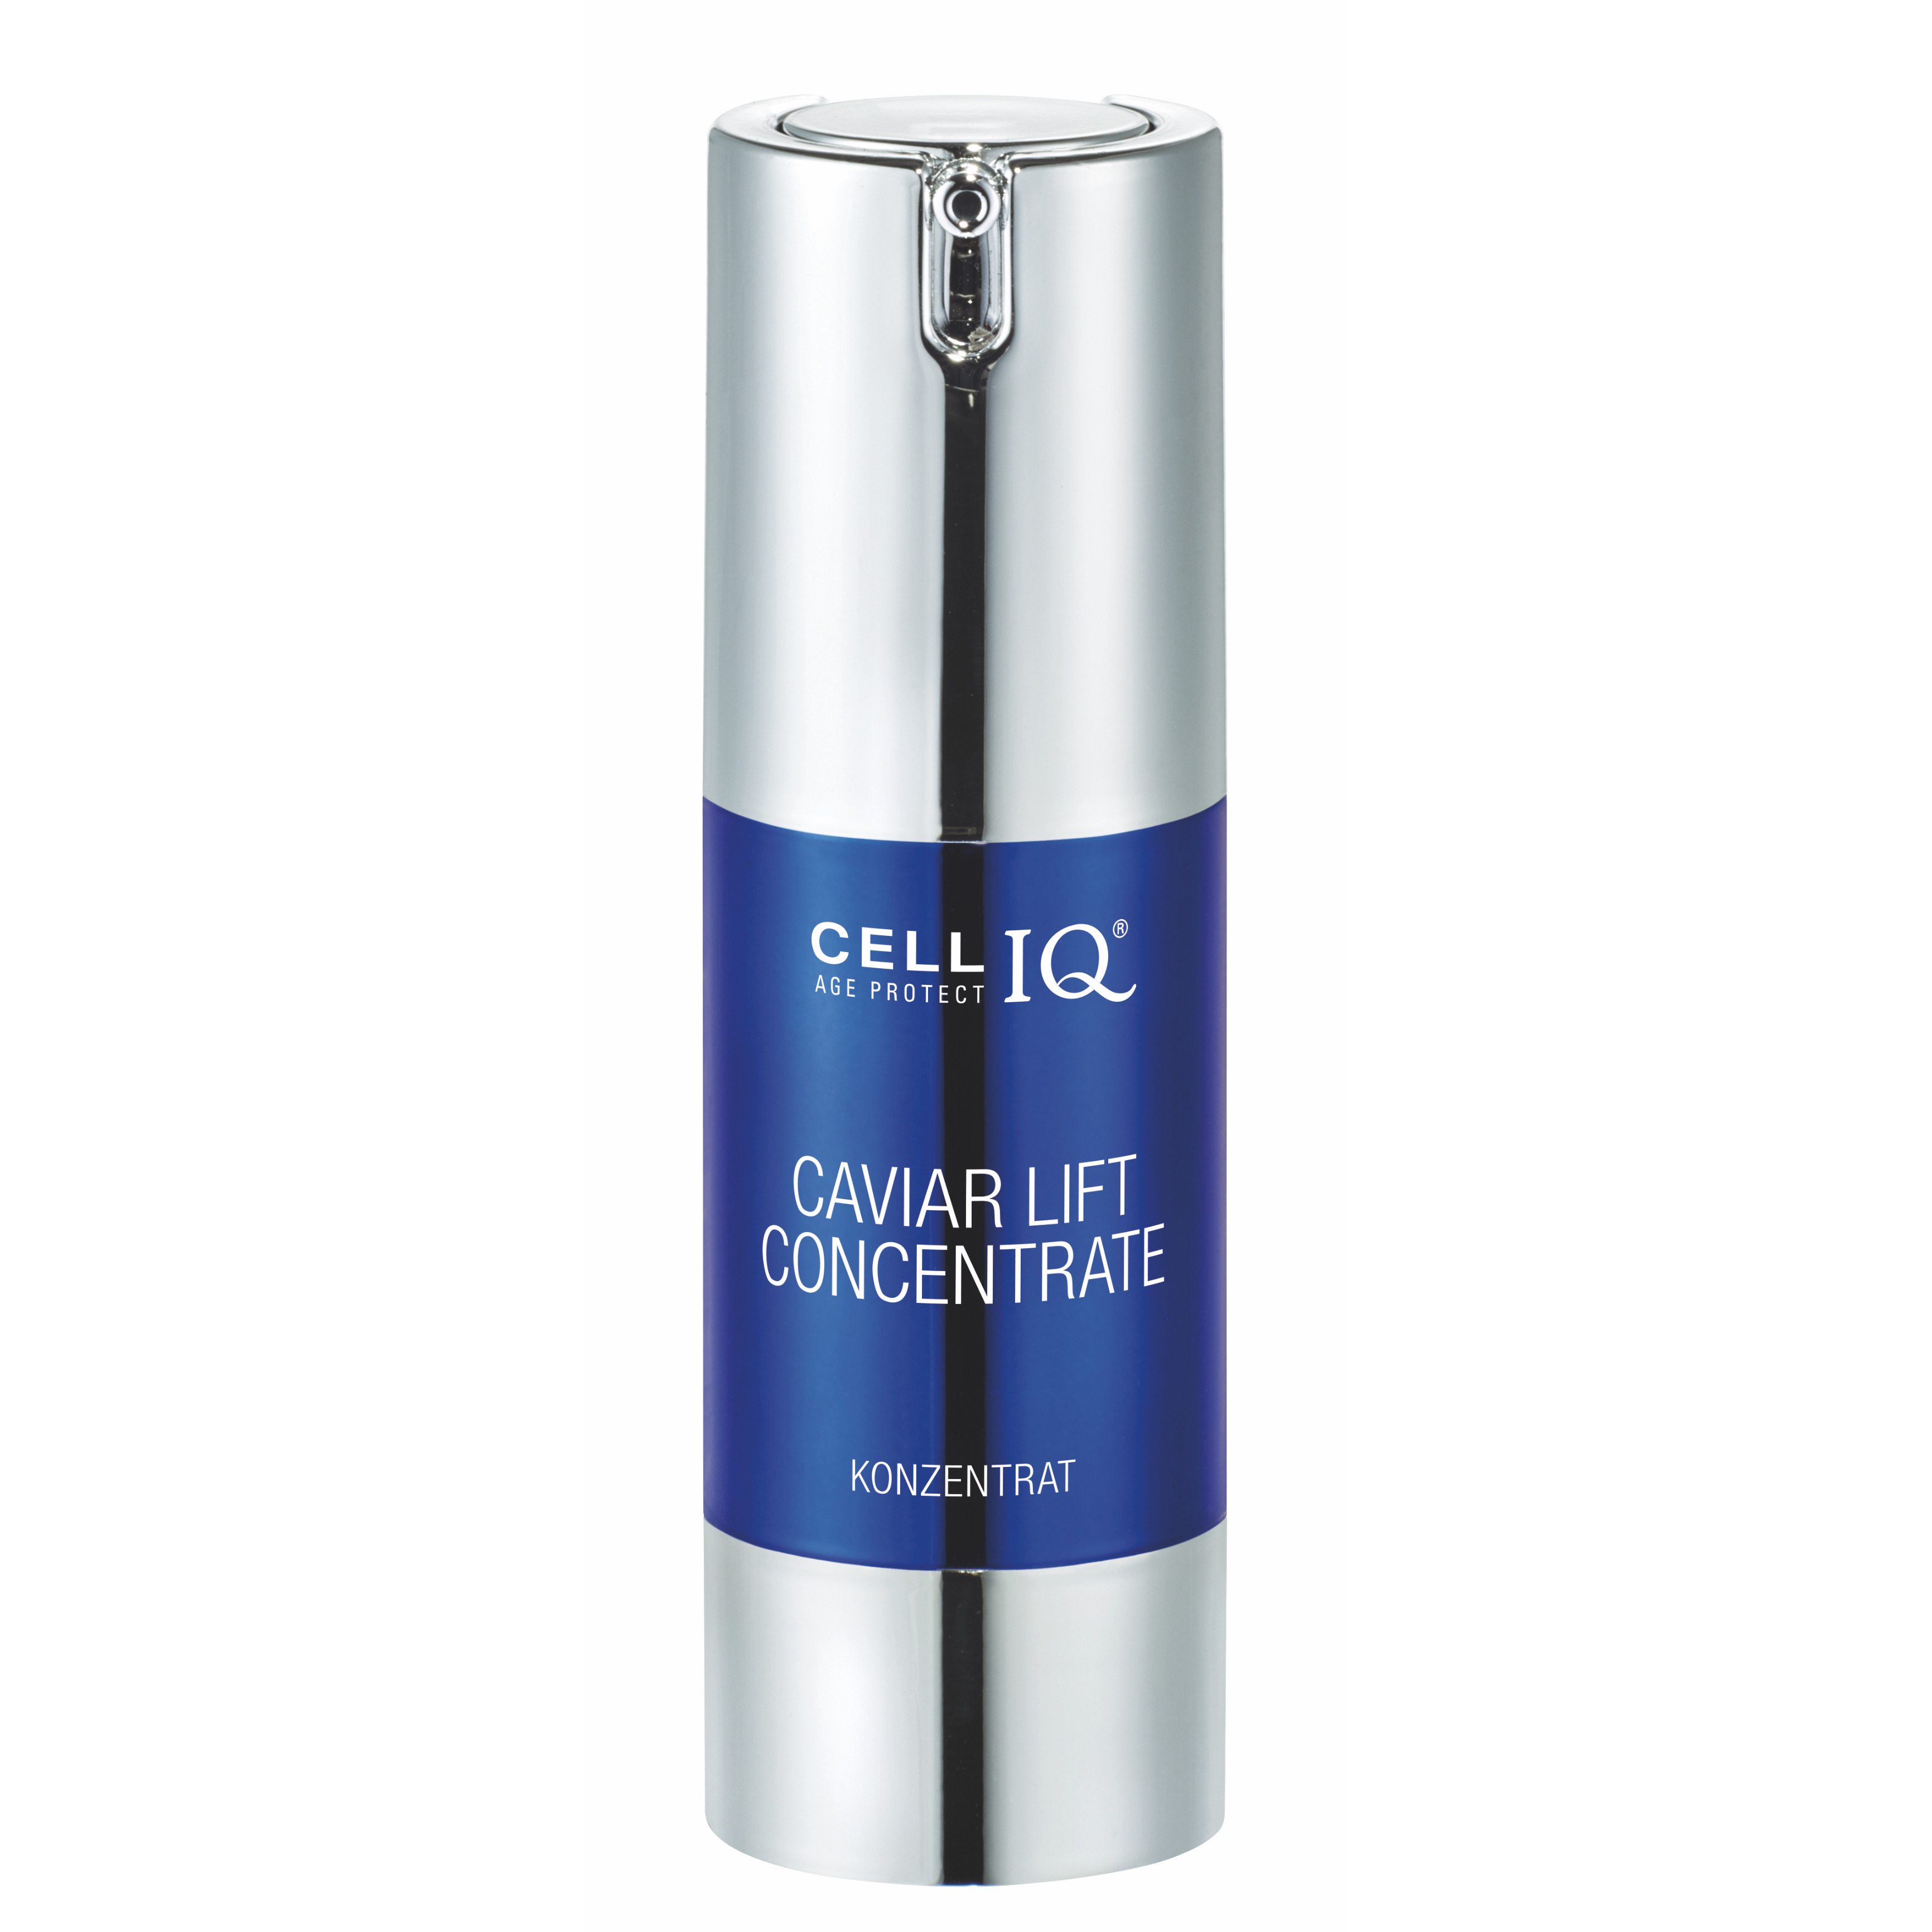 Cell IQ Caviar Lift Concentrate